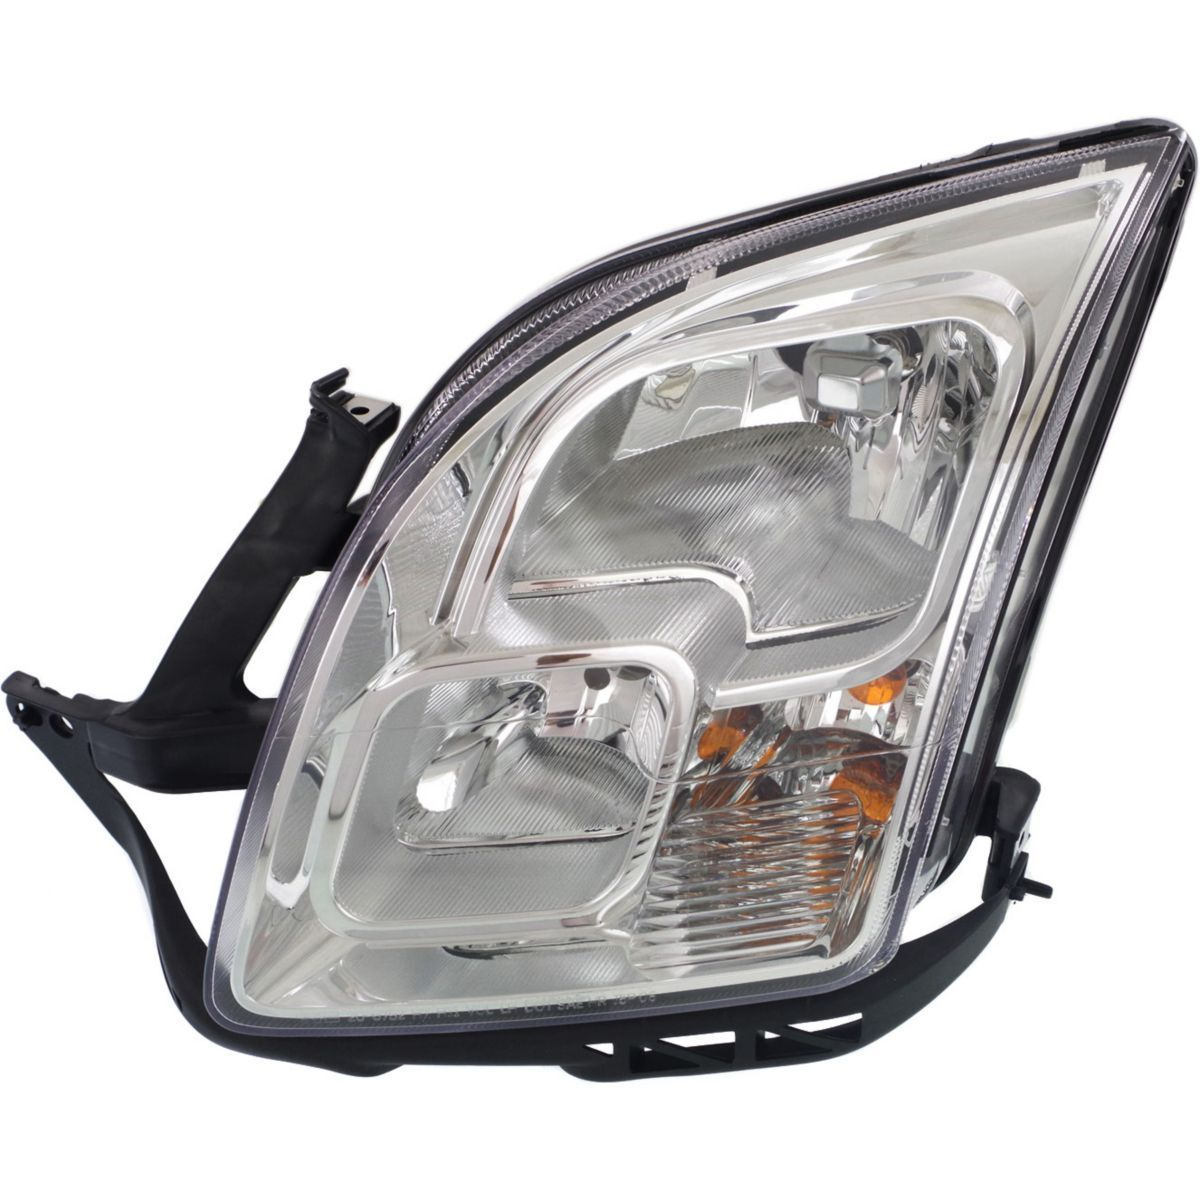 Ford Fusion 2006 2007 2008 2009 left driver headlight